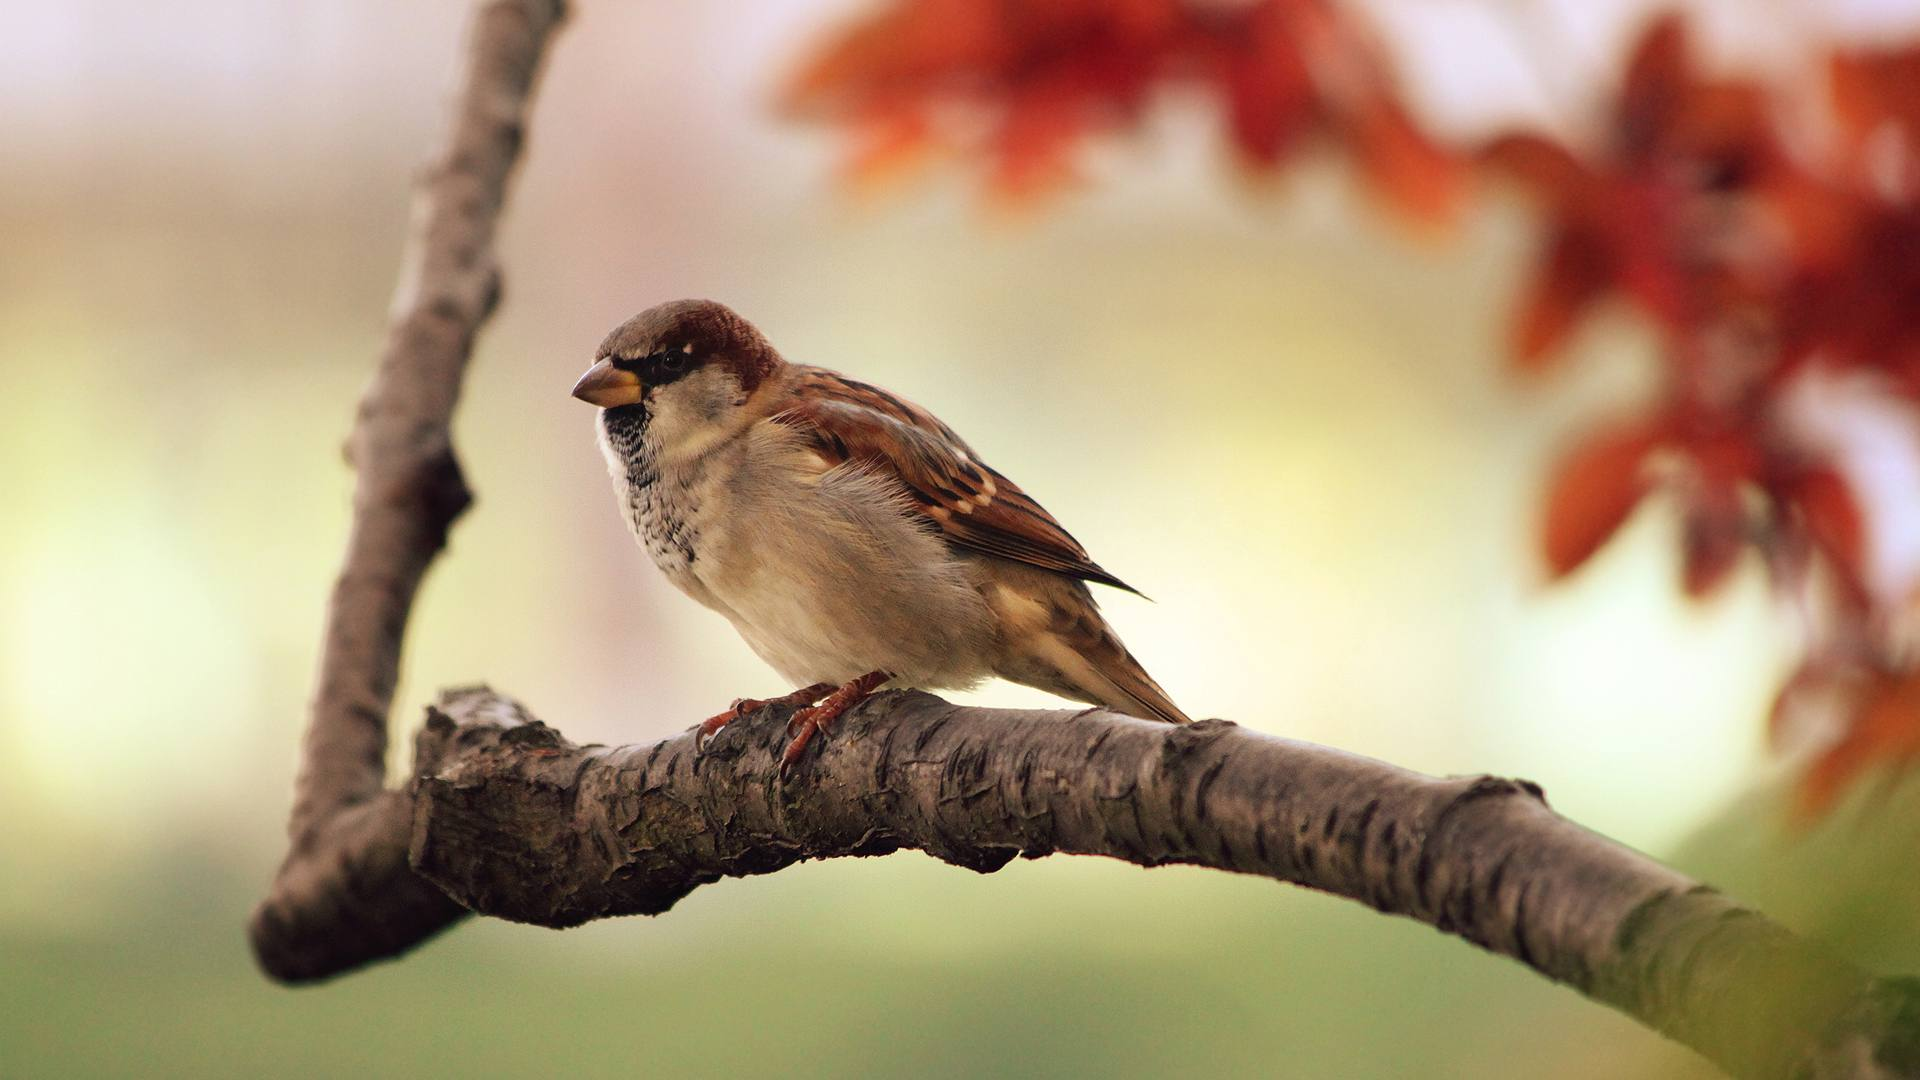 Free autumn wallpaper featuring a sparrow sitting on a branch.